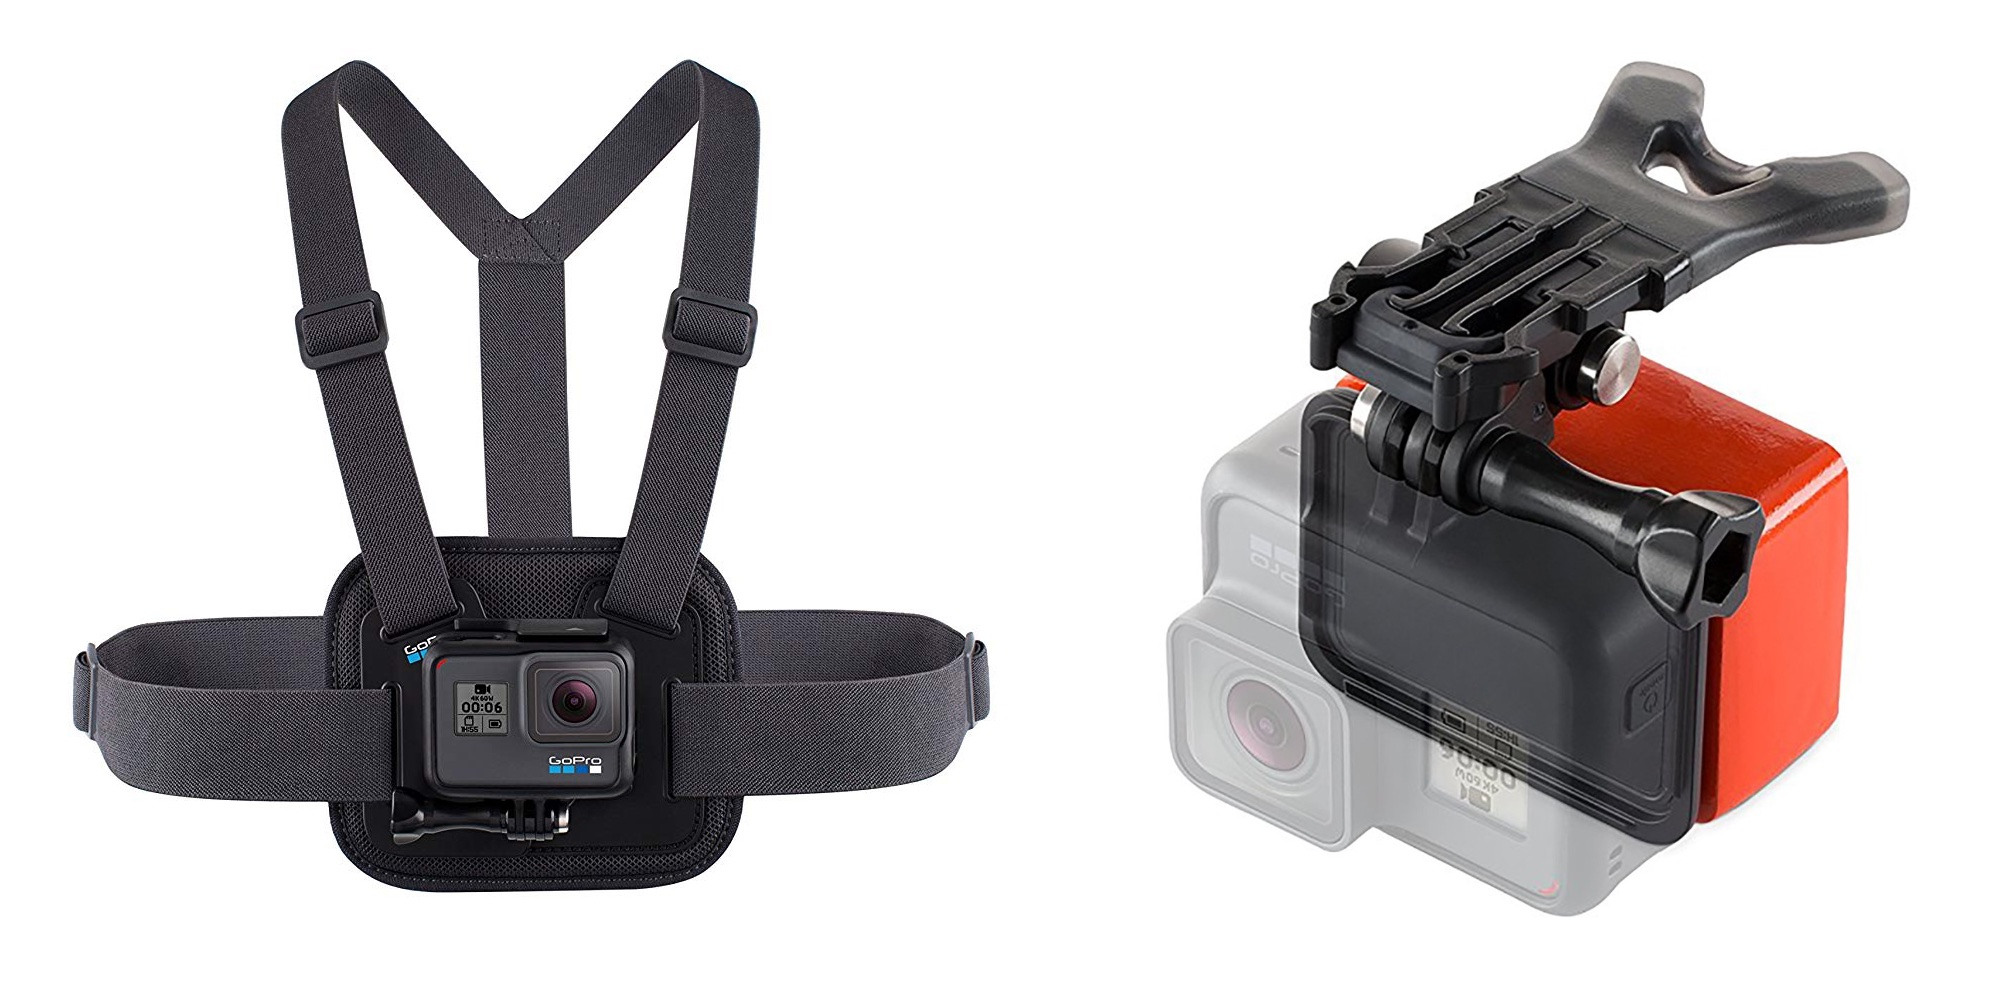 Equip your GoPro w/ official accessories: chest mount $30, Bite Mount + Floaty $24 (Up to 25% off)